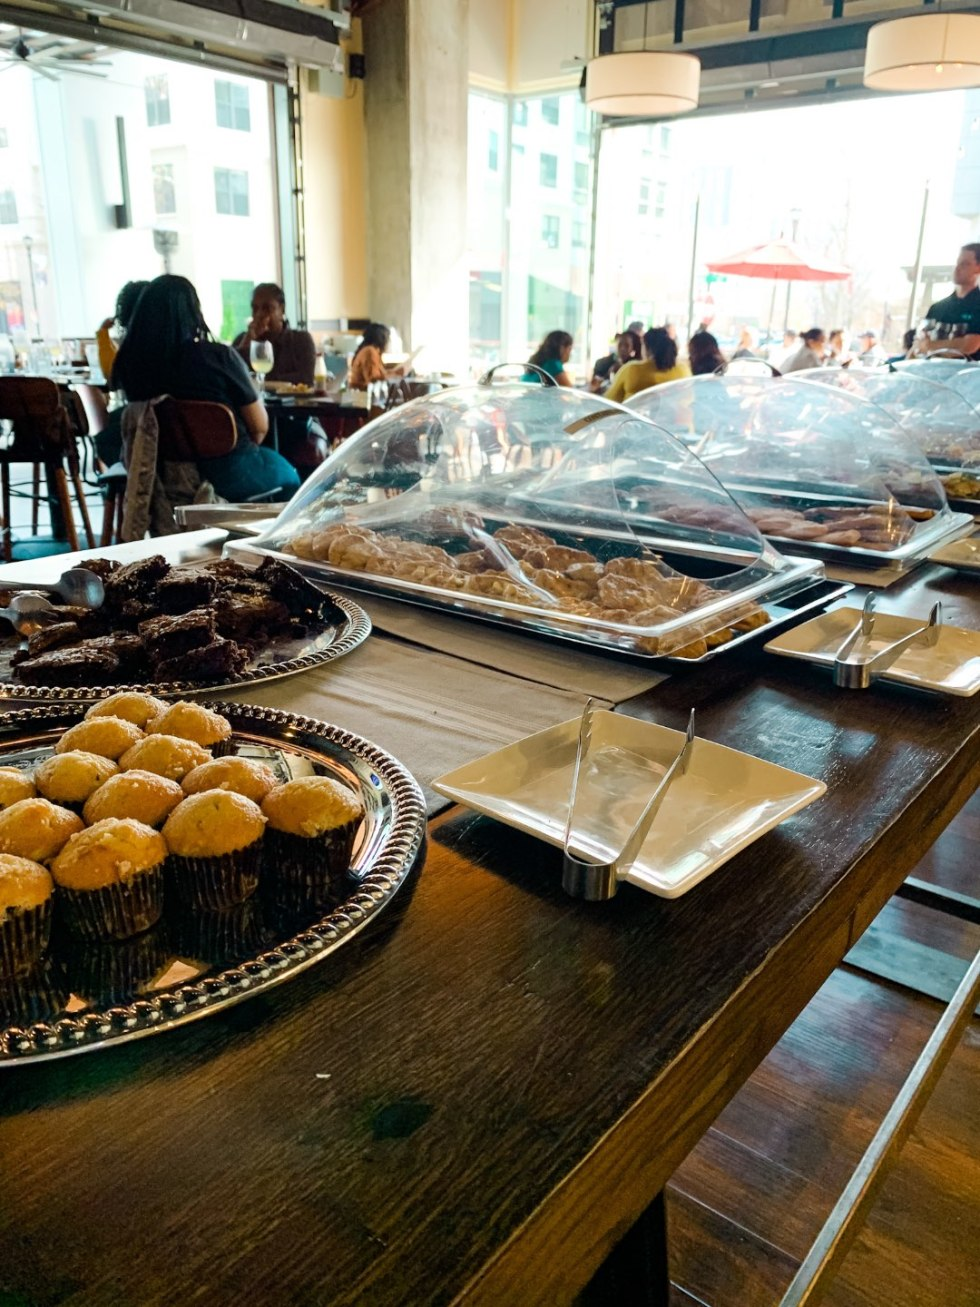 Where to Get Brunch in Raleigh: the 7 Best Spots - I'm Fixin' To - @mbg0112 \ Brunch in Raleigh by popular Raleigh blog, I'm Fixin To: image of a food buffet at Stir.